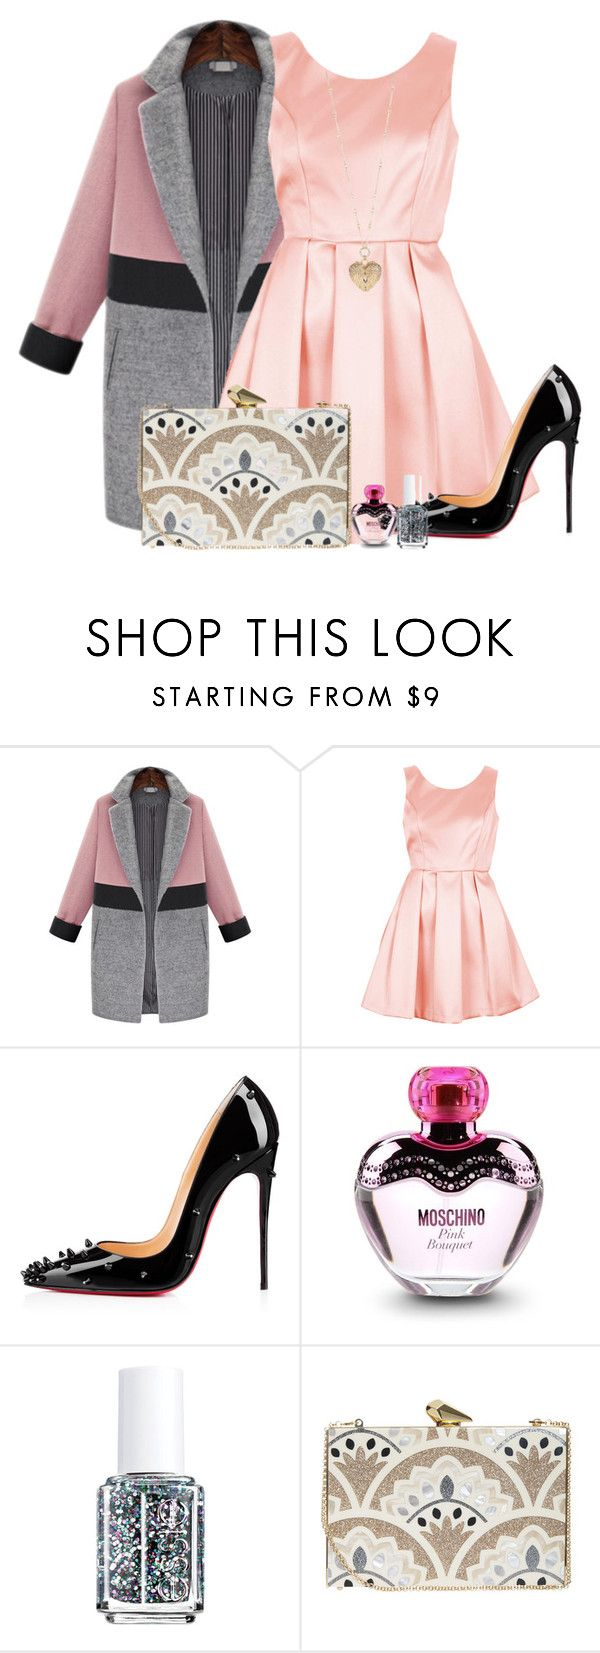 """Because of you I find it hard to trust not only me, but everyone around me."" by grrxcia ❤ liked on Polyvore featuring Topshop, Christian Louboutin, Moschino, Essie, KOTUR, Betsey Johnson, women's clothing, women's fashion, women and female"